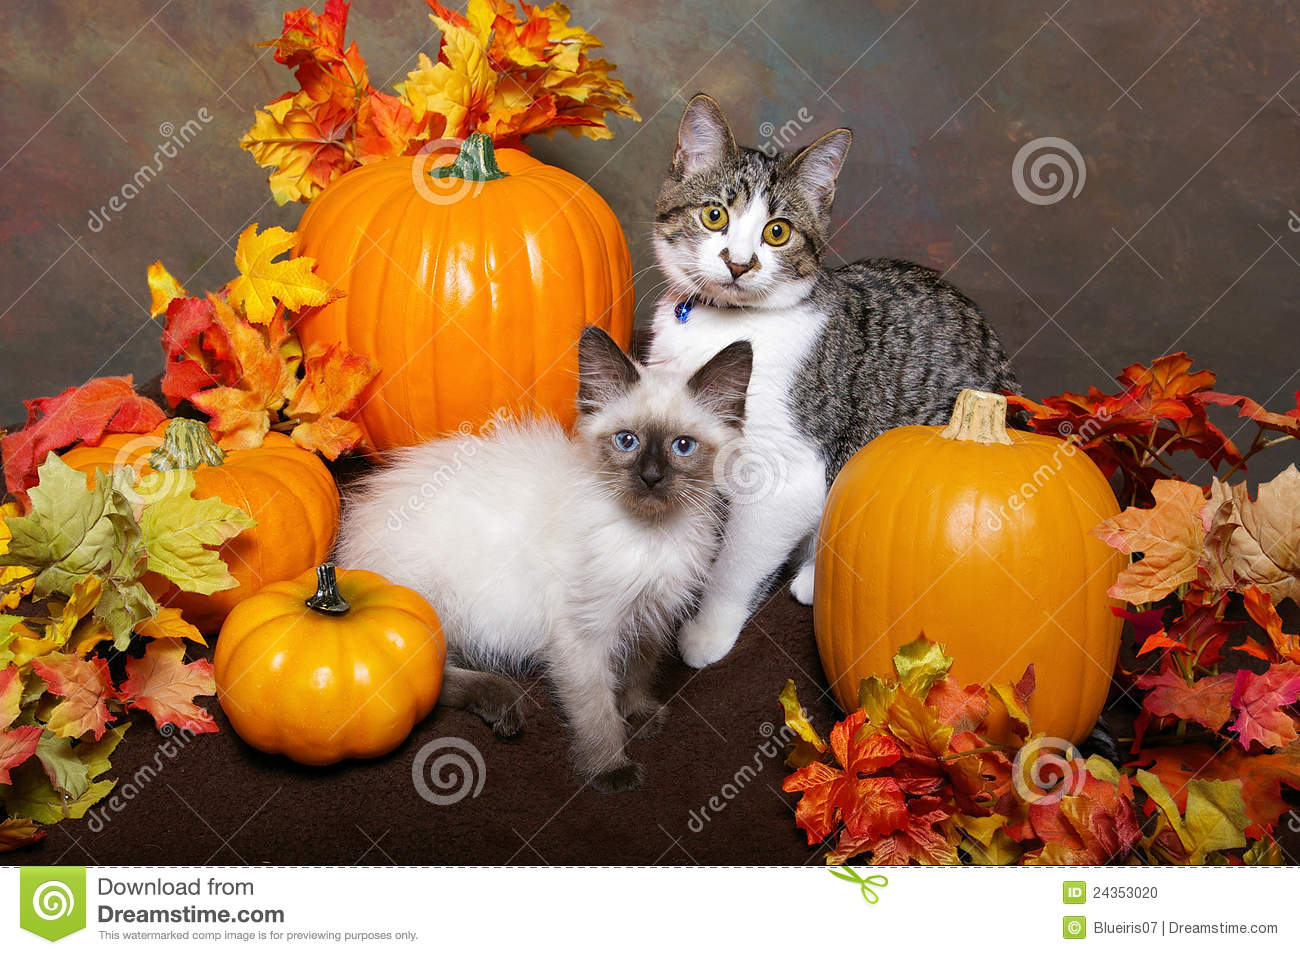 Free Fall Harvest Wallpaper Two Kittens With Fall Leaves And Pumpkins Stock Photo